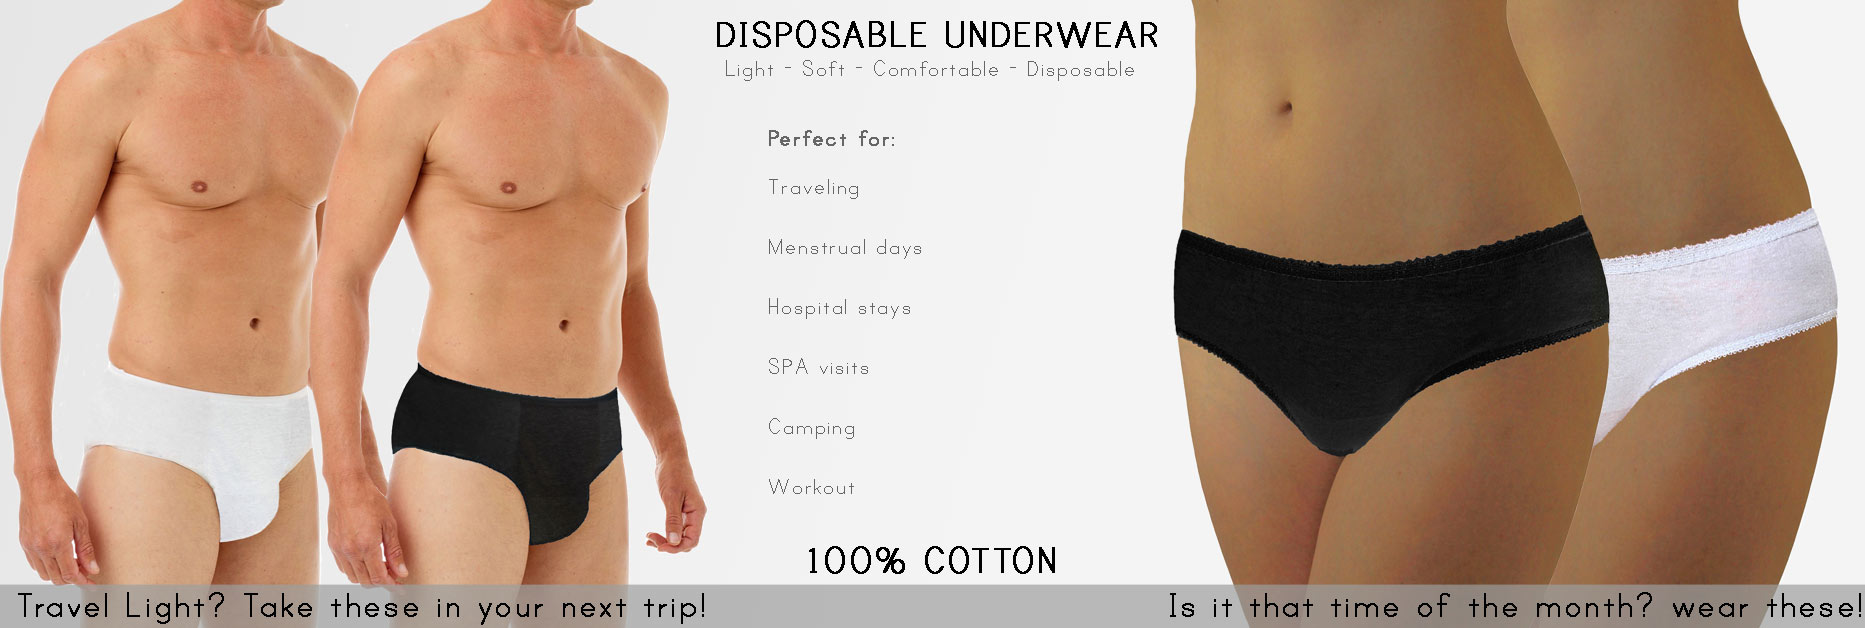 Underworks Disposable Underwear for men and women